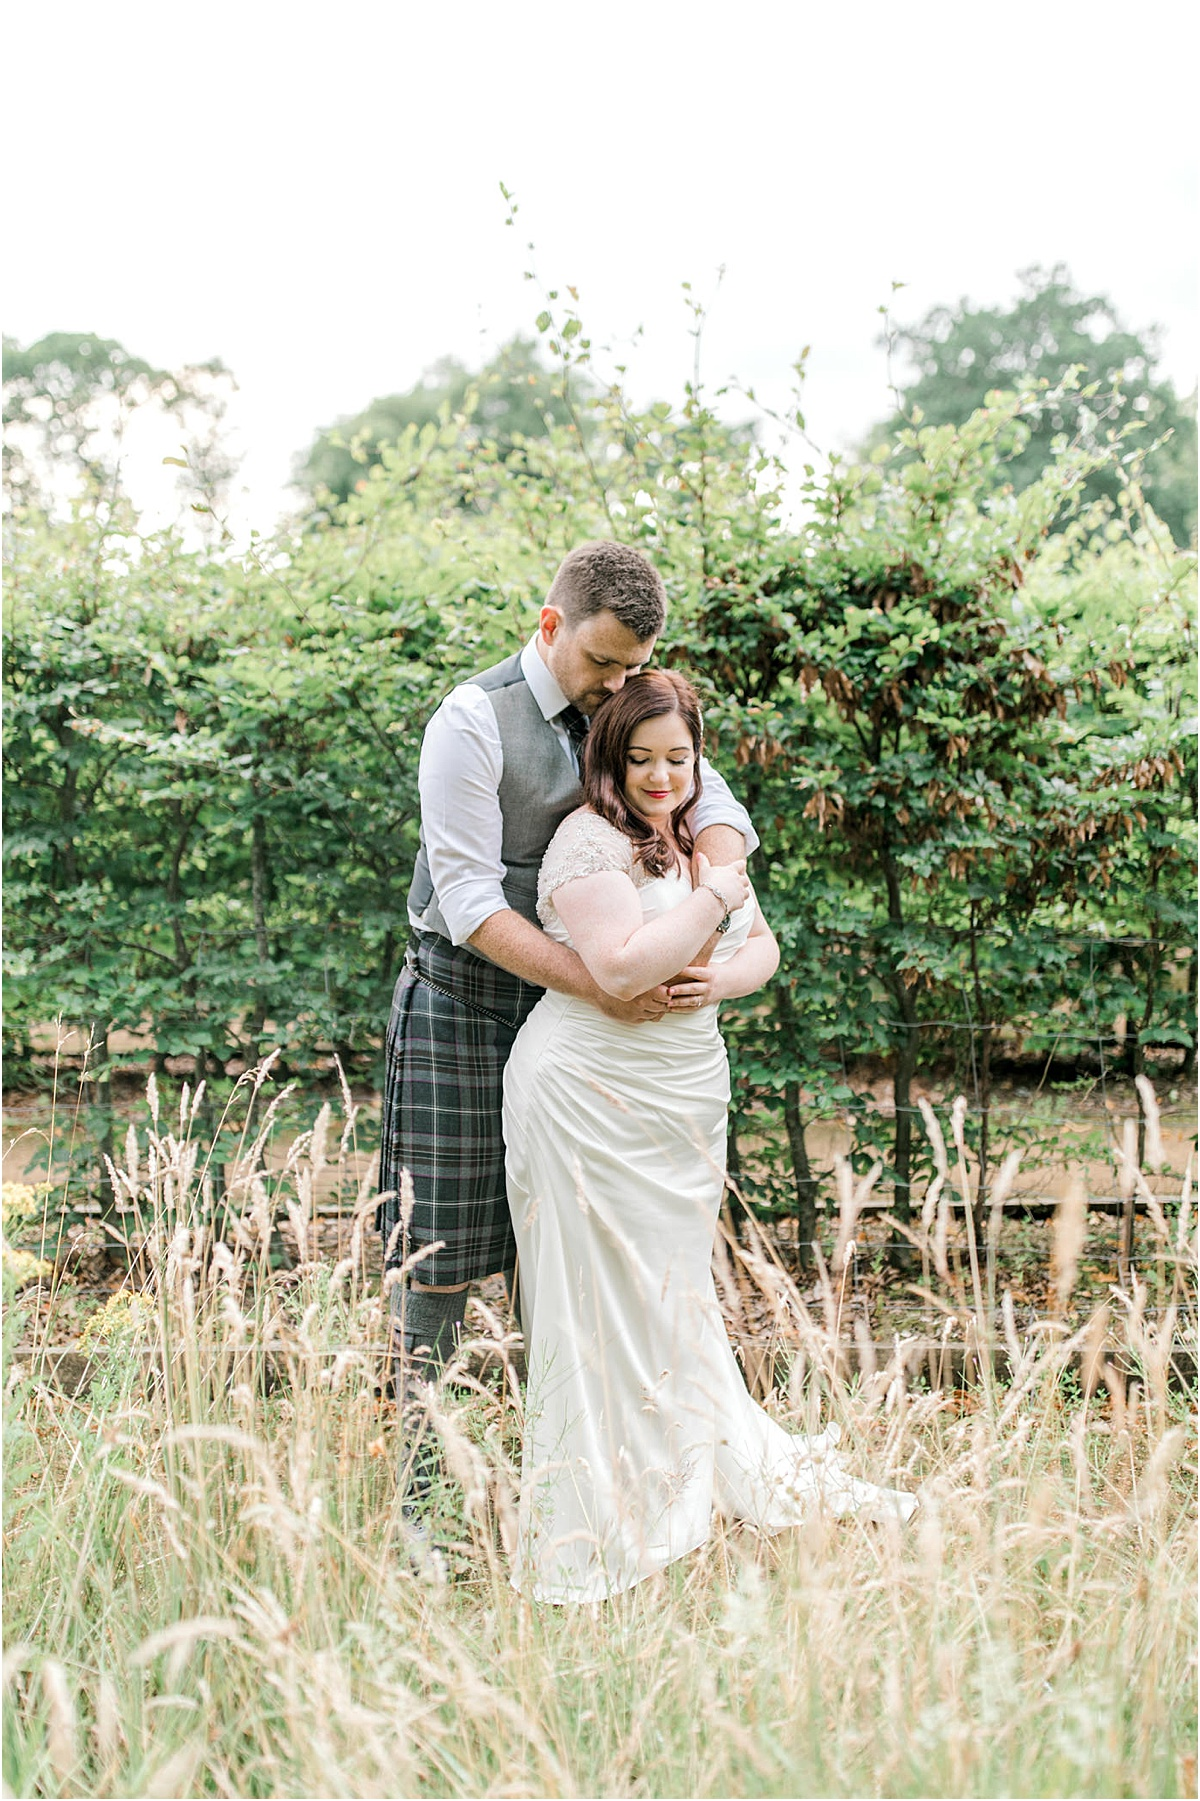 Fine Art Wedding Photographers,The Gibsons,The Gibsons Photography,elegant wedding photographers glasgow,romantic photographers Scotland,soft wedding photographers,two wedding photographers scotland,